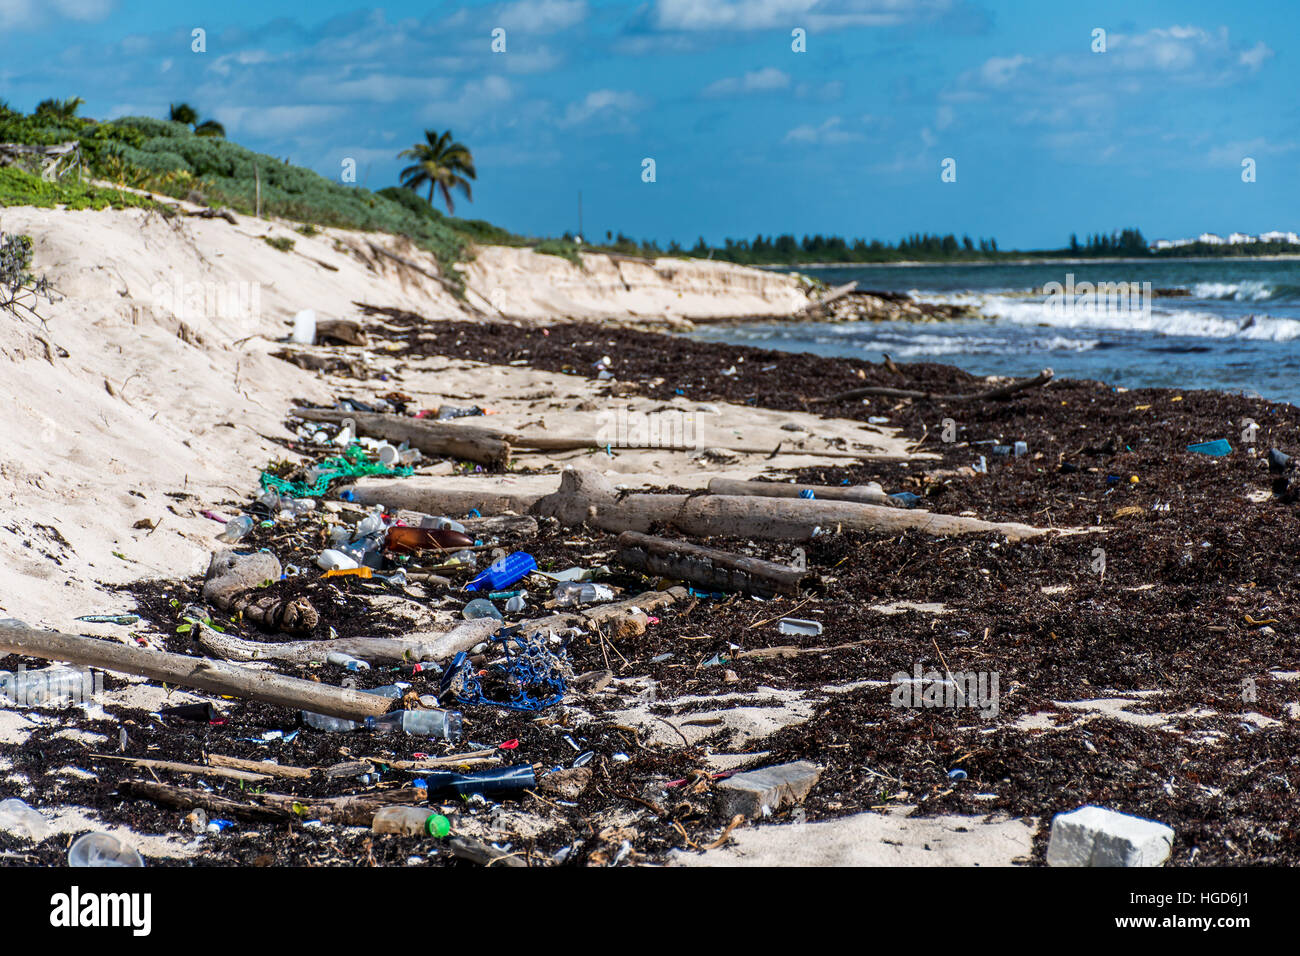 Mexico Coastline ocean Pollution Problem with plastic litter - Stock Image